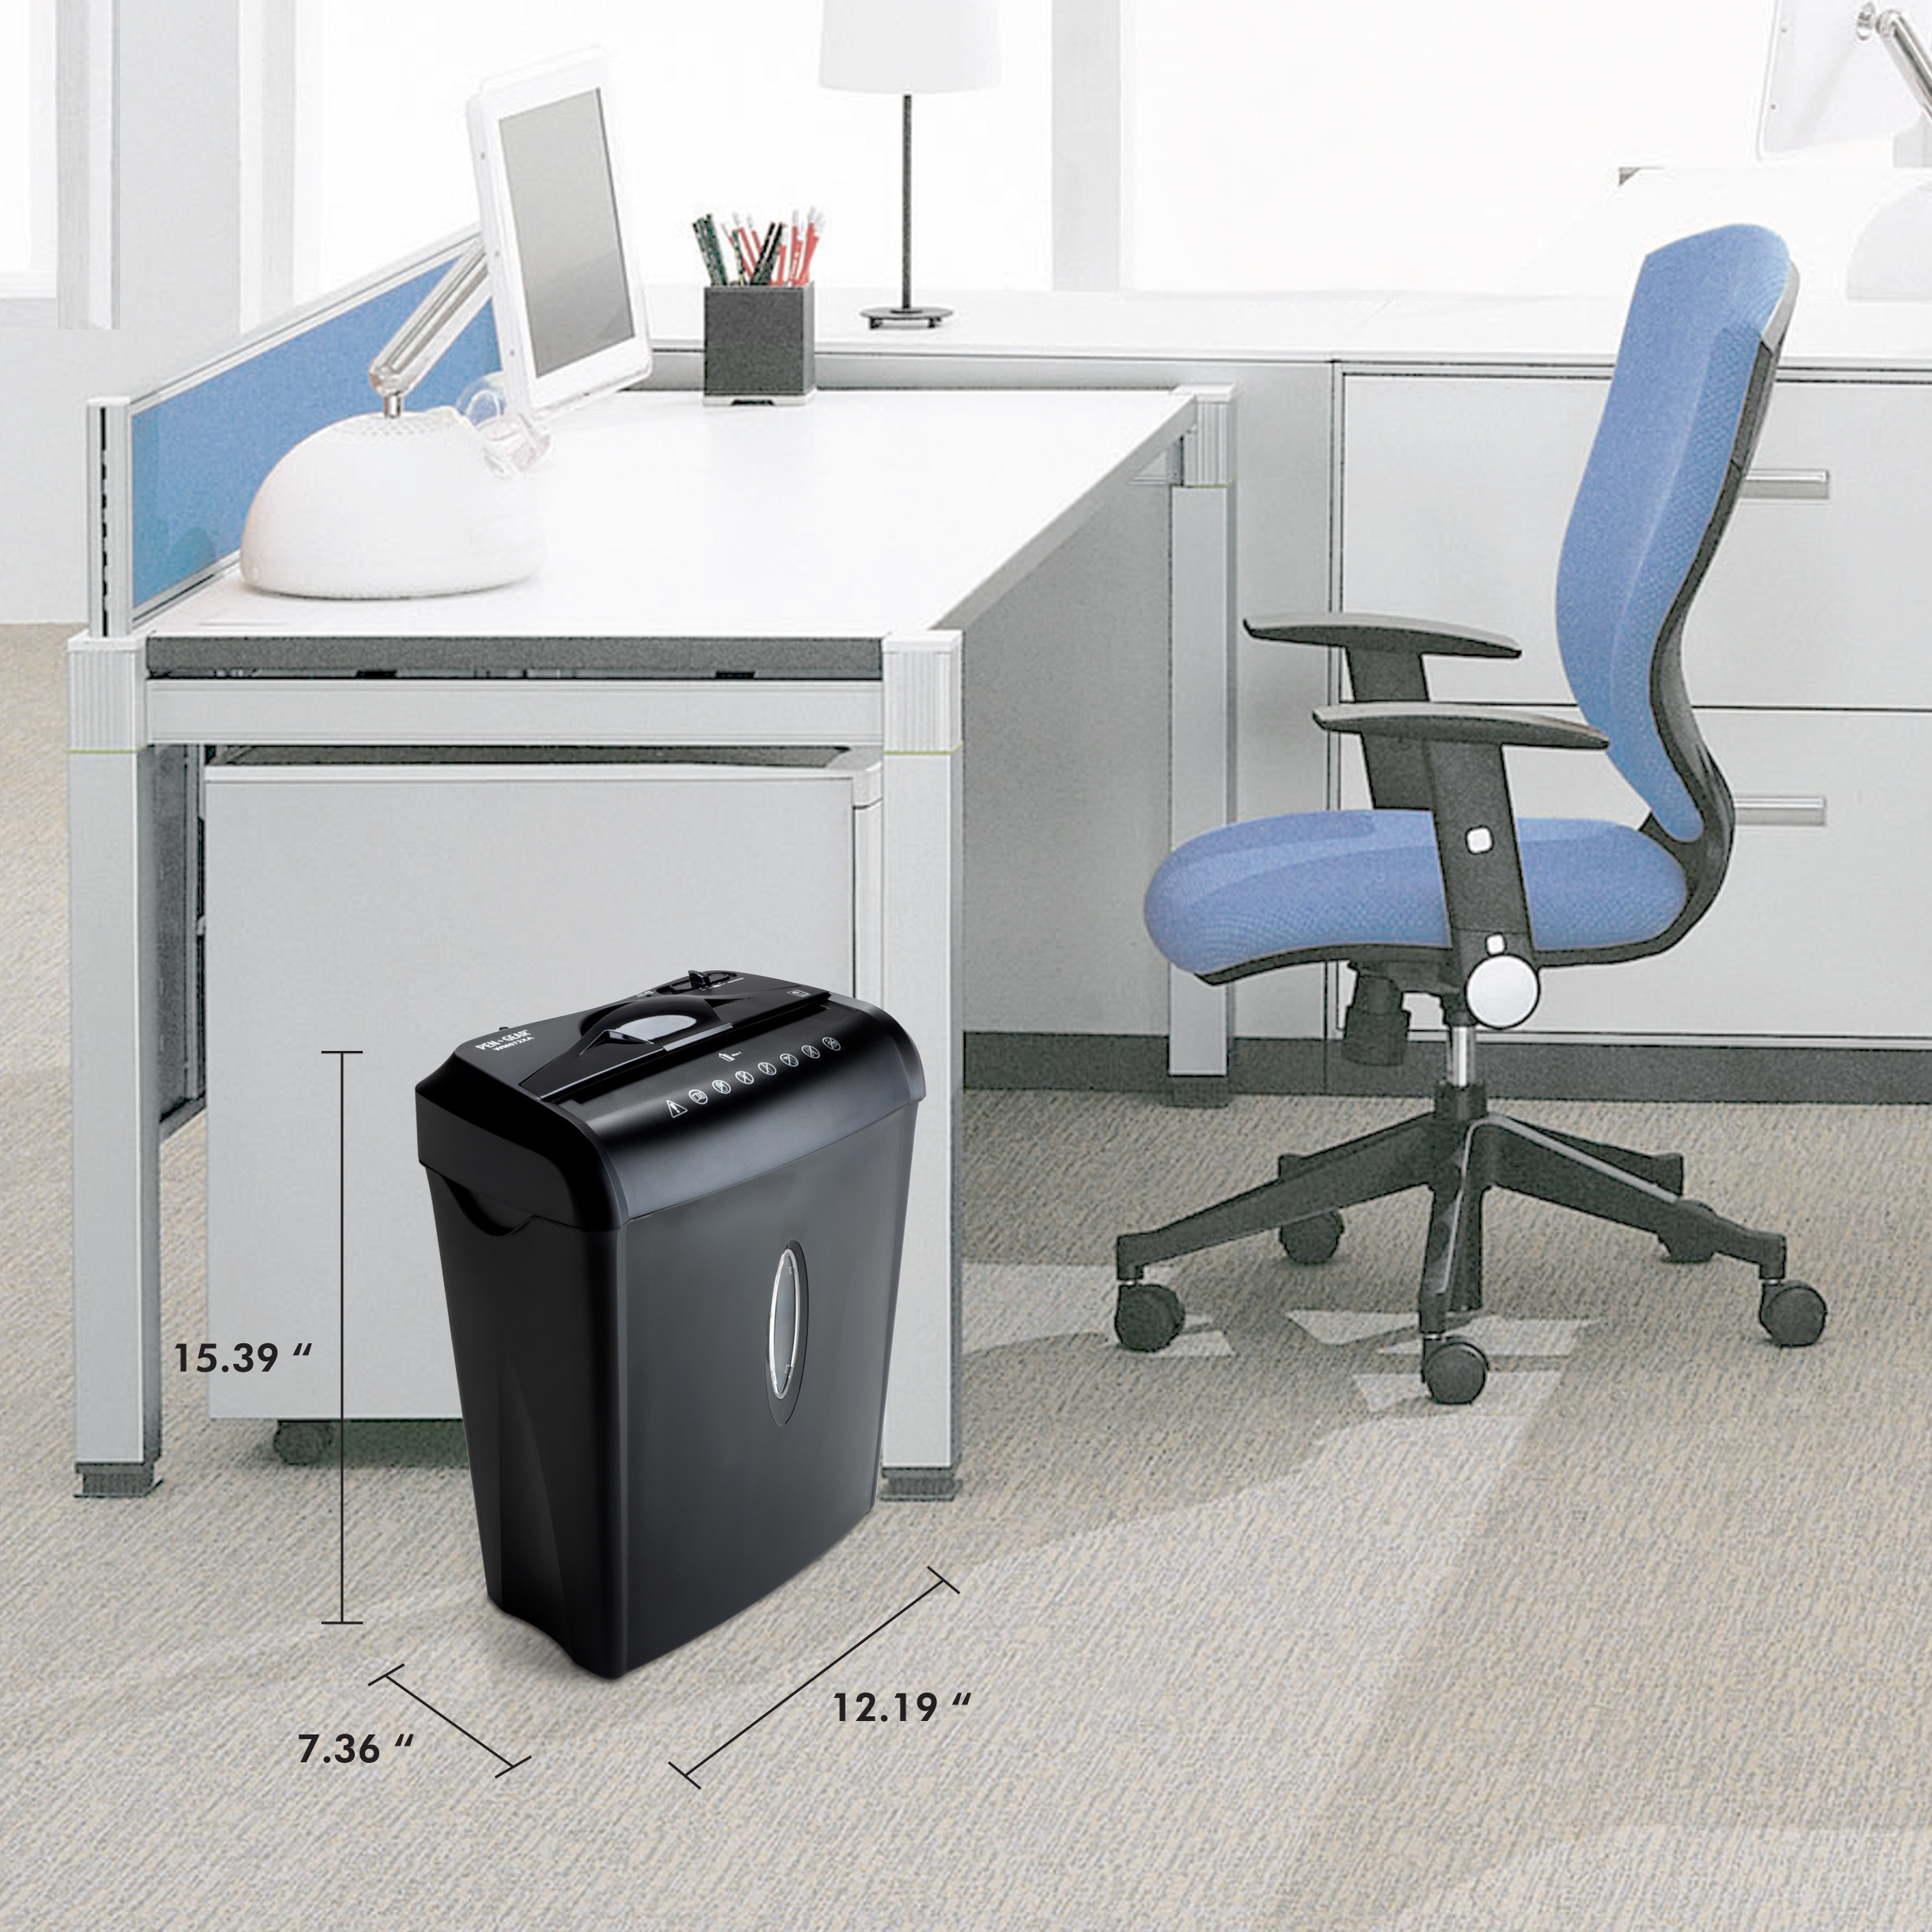 the shredder shown in an office with it's measurements